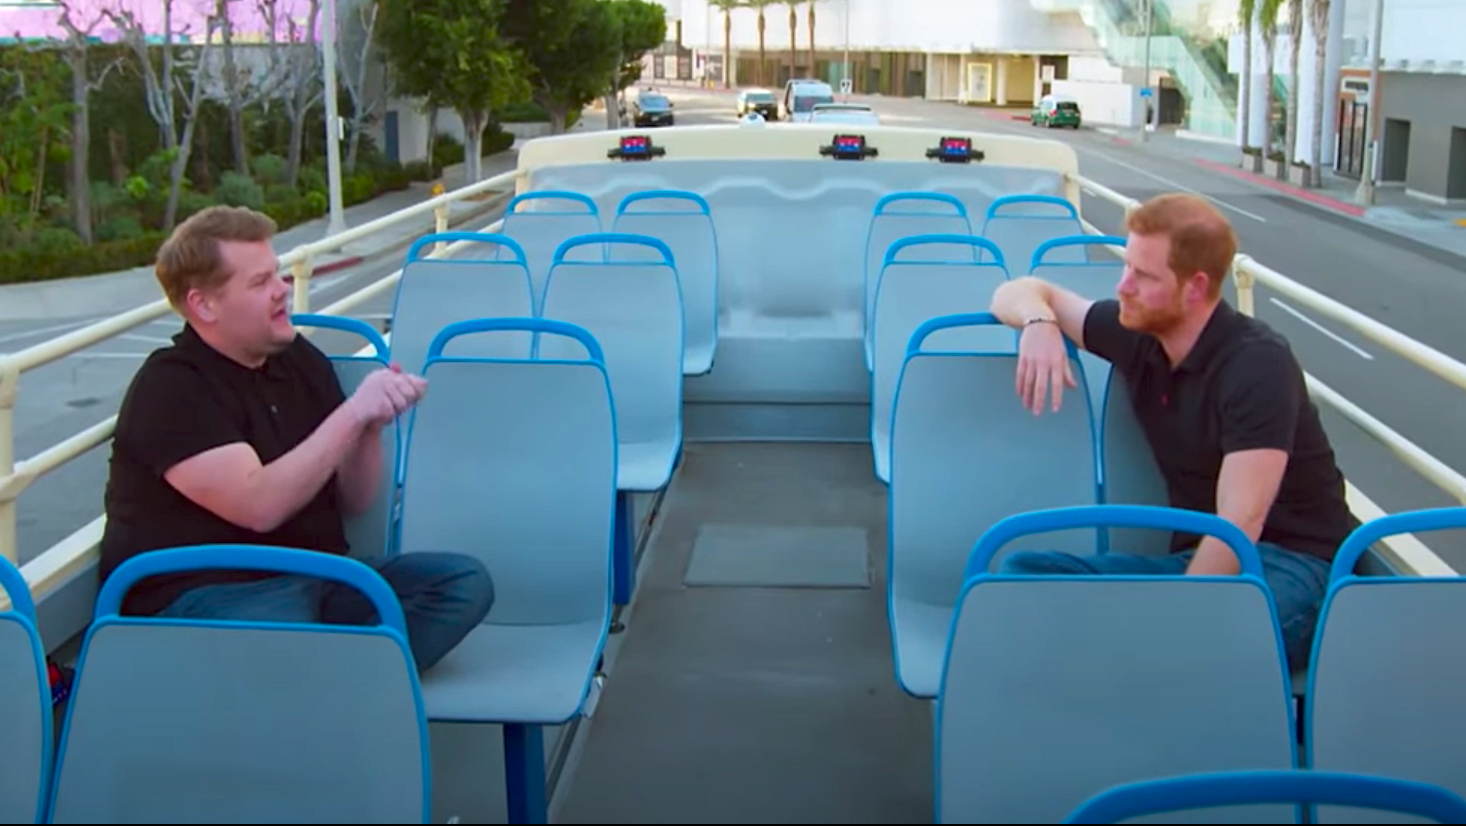 Prince Harry Takes Open-Top Bus Tour Ride Around LA With James Corden On 'The Late Late Show'